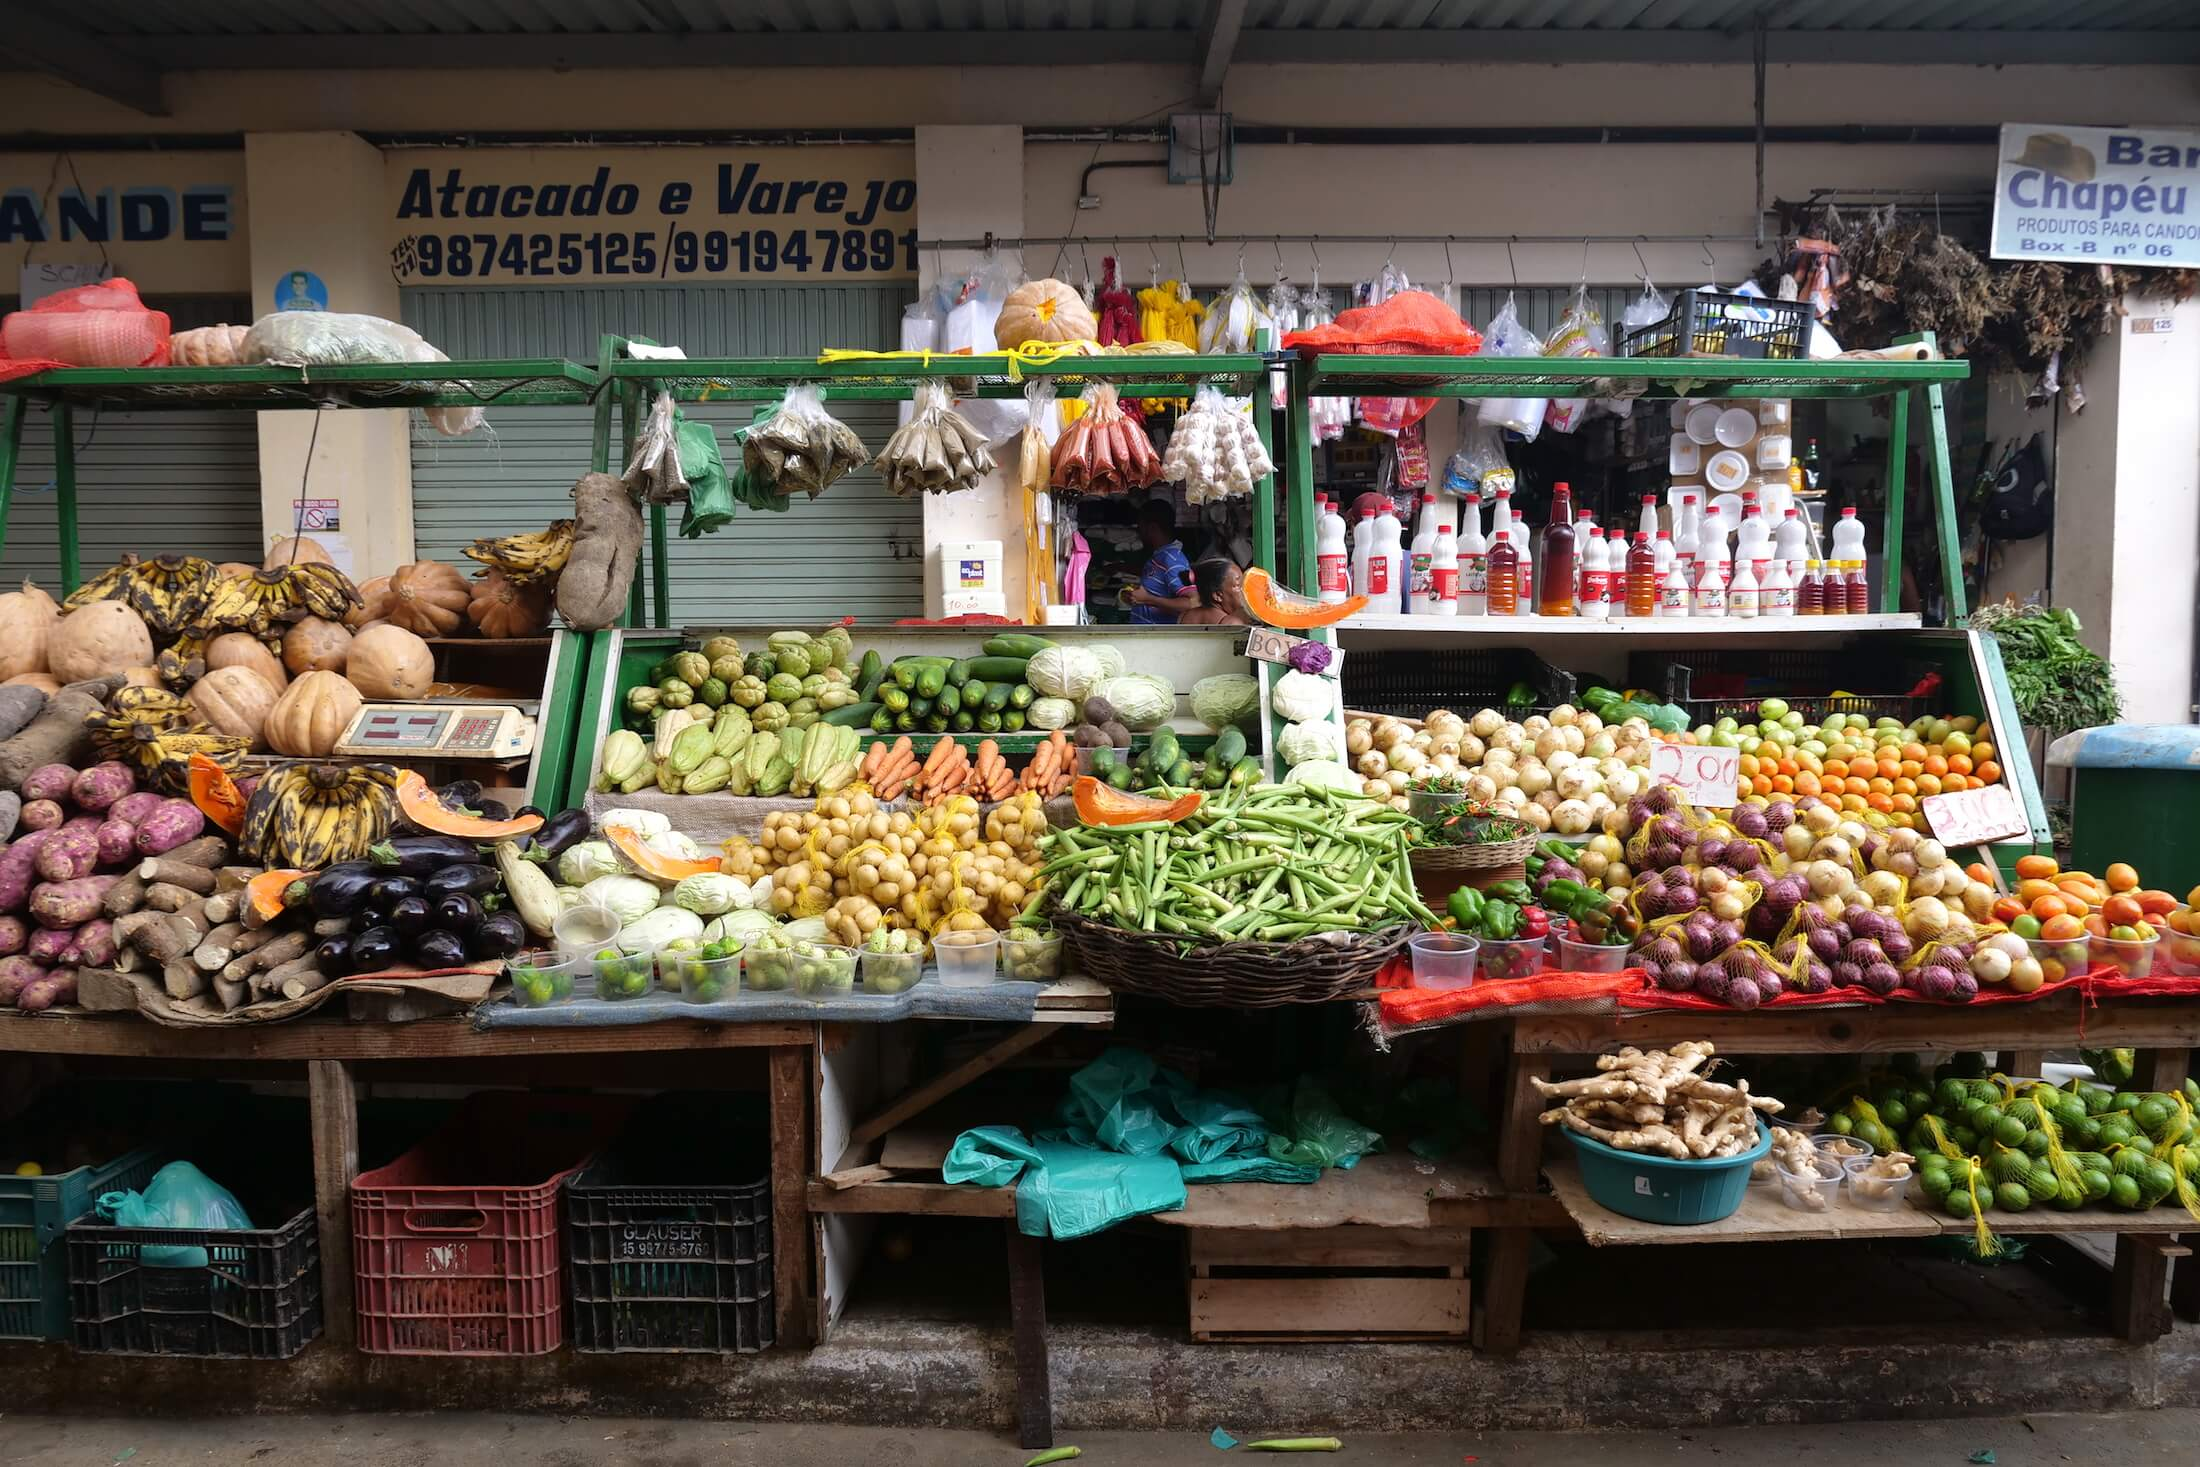 a huge selection of local fruits and vegetables, but also cooked food here at the São Joaquim fresh market